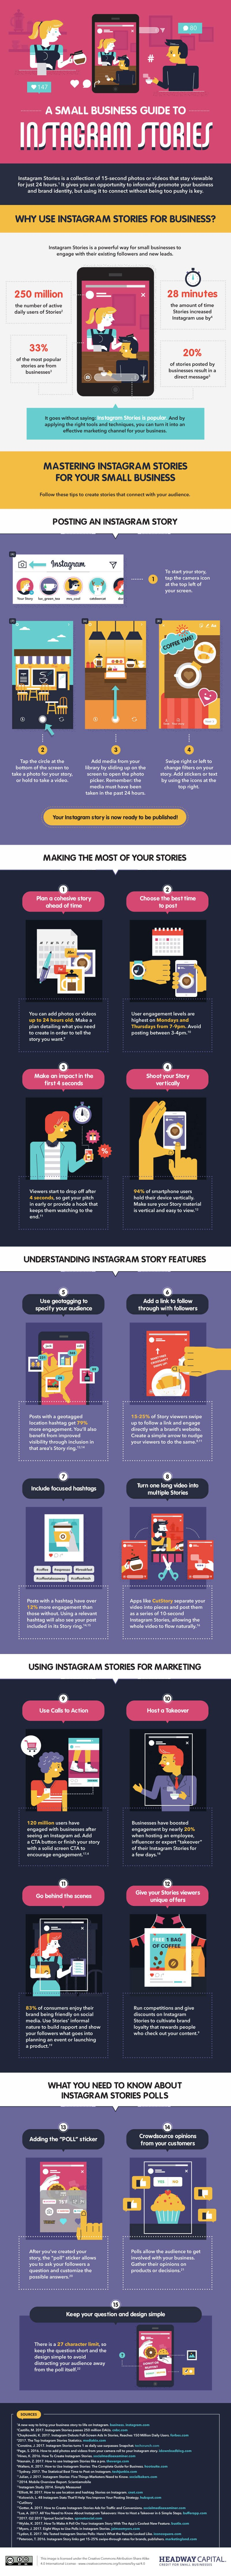 small-business-guide-instagram-stories